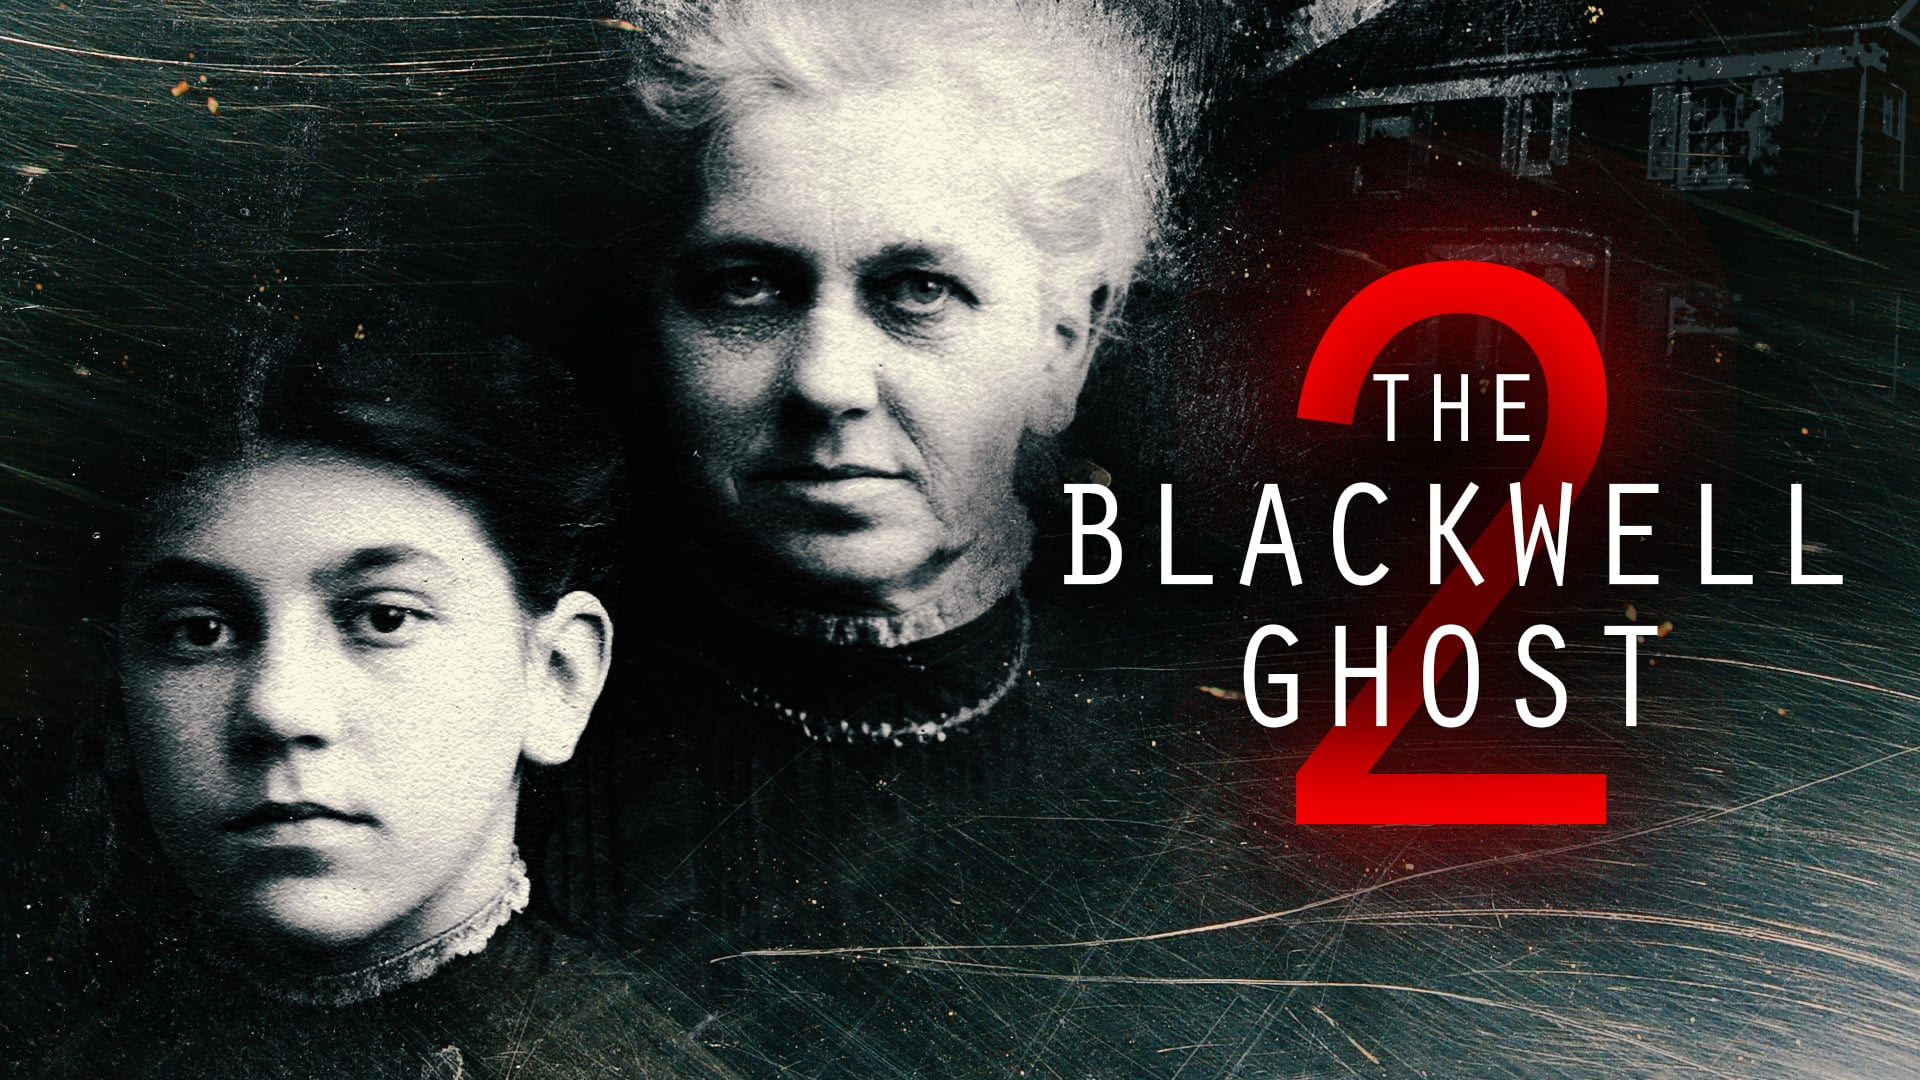 The Blackwell Ghost 2 - TRAILER